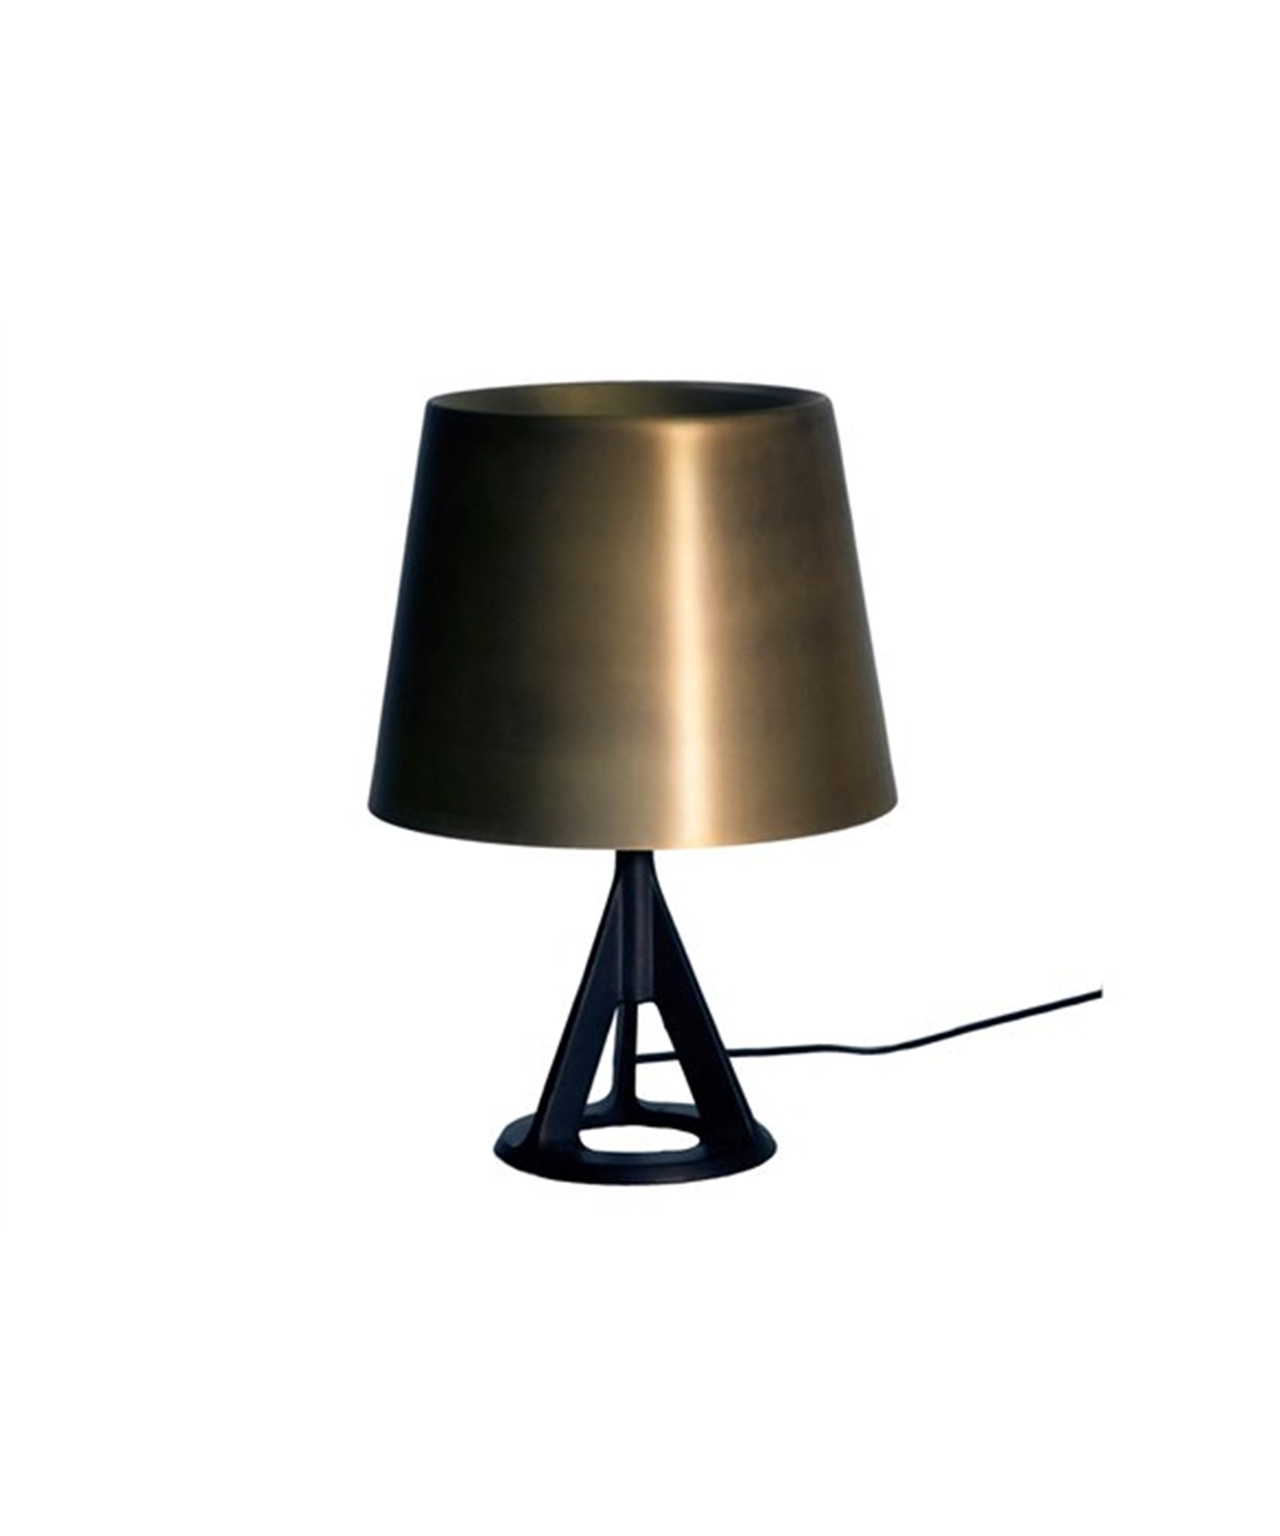 Billede af Base Light Messing Bordlampe - Tom Dixon